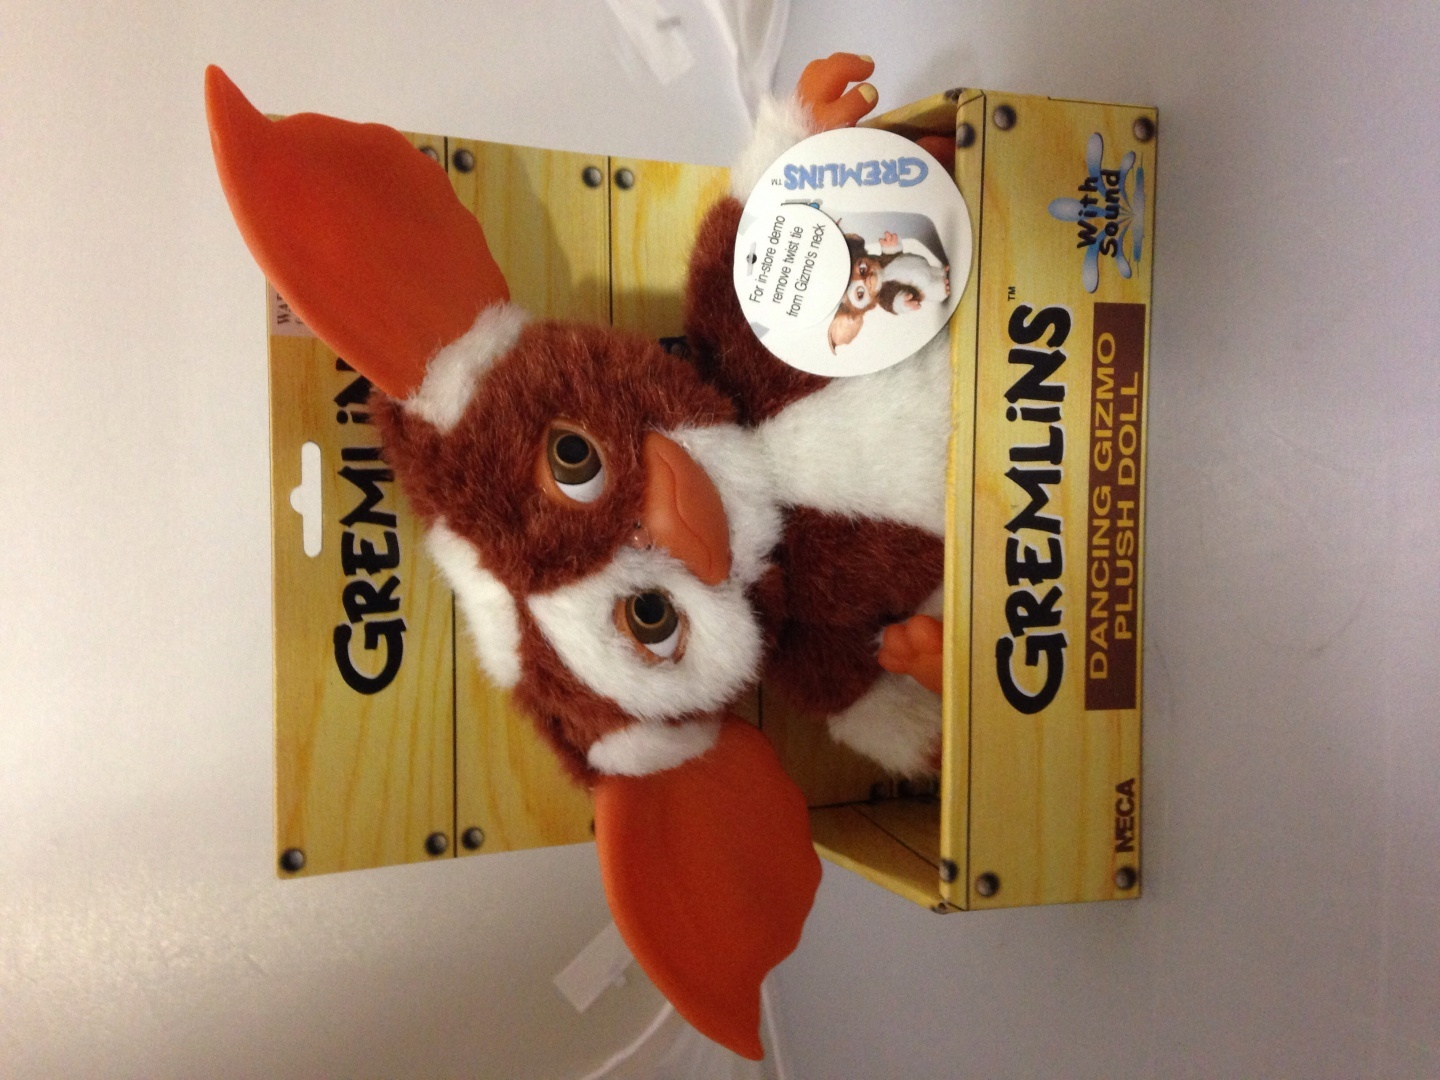 Gremlins Electronic Dancing Plush Doll Gizmo Measures 8n Tall Neca